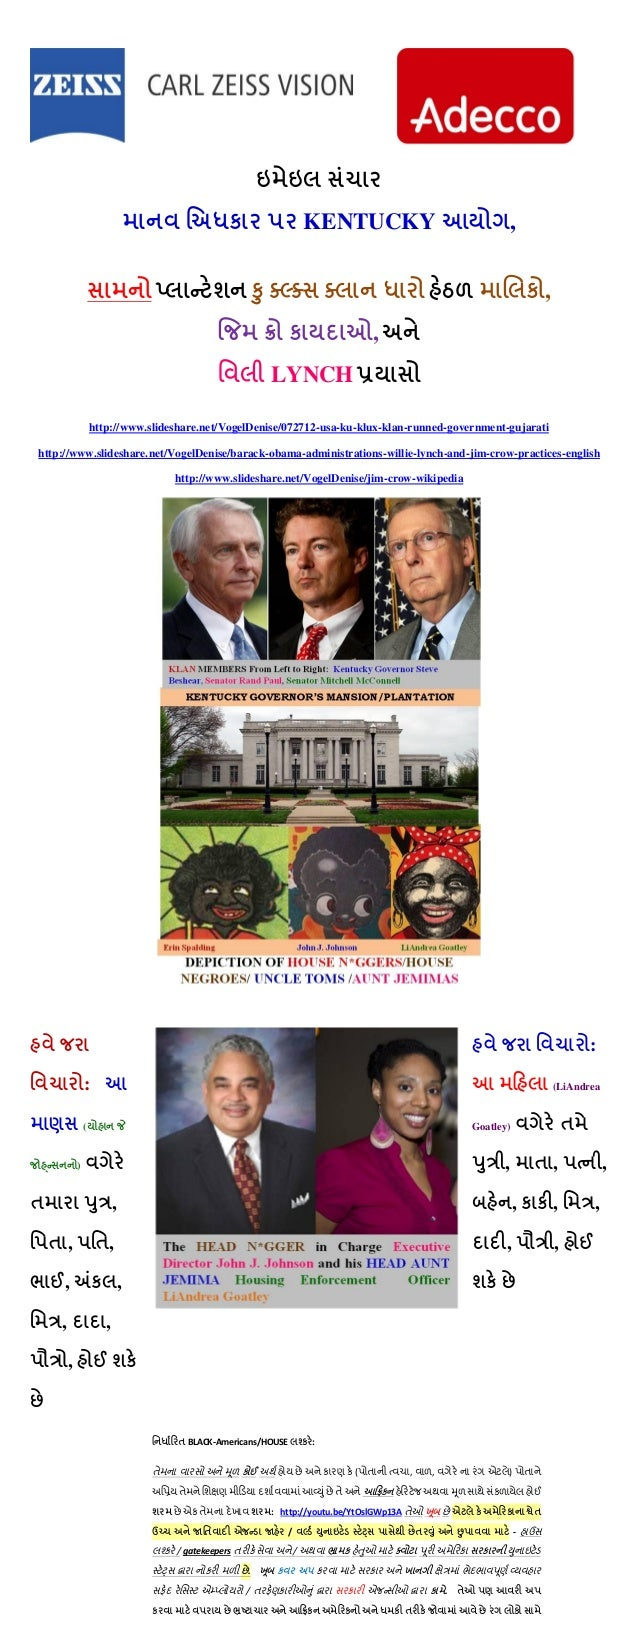 પ KENTUCKY , , , LYNCH http://www.slideshare.net/VogelDenise/072712-usa-ku-klux-klan-runned-government-gujarati http://www...